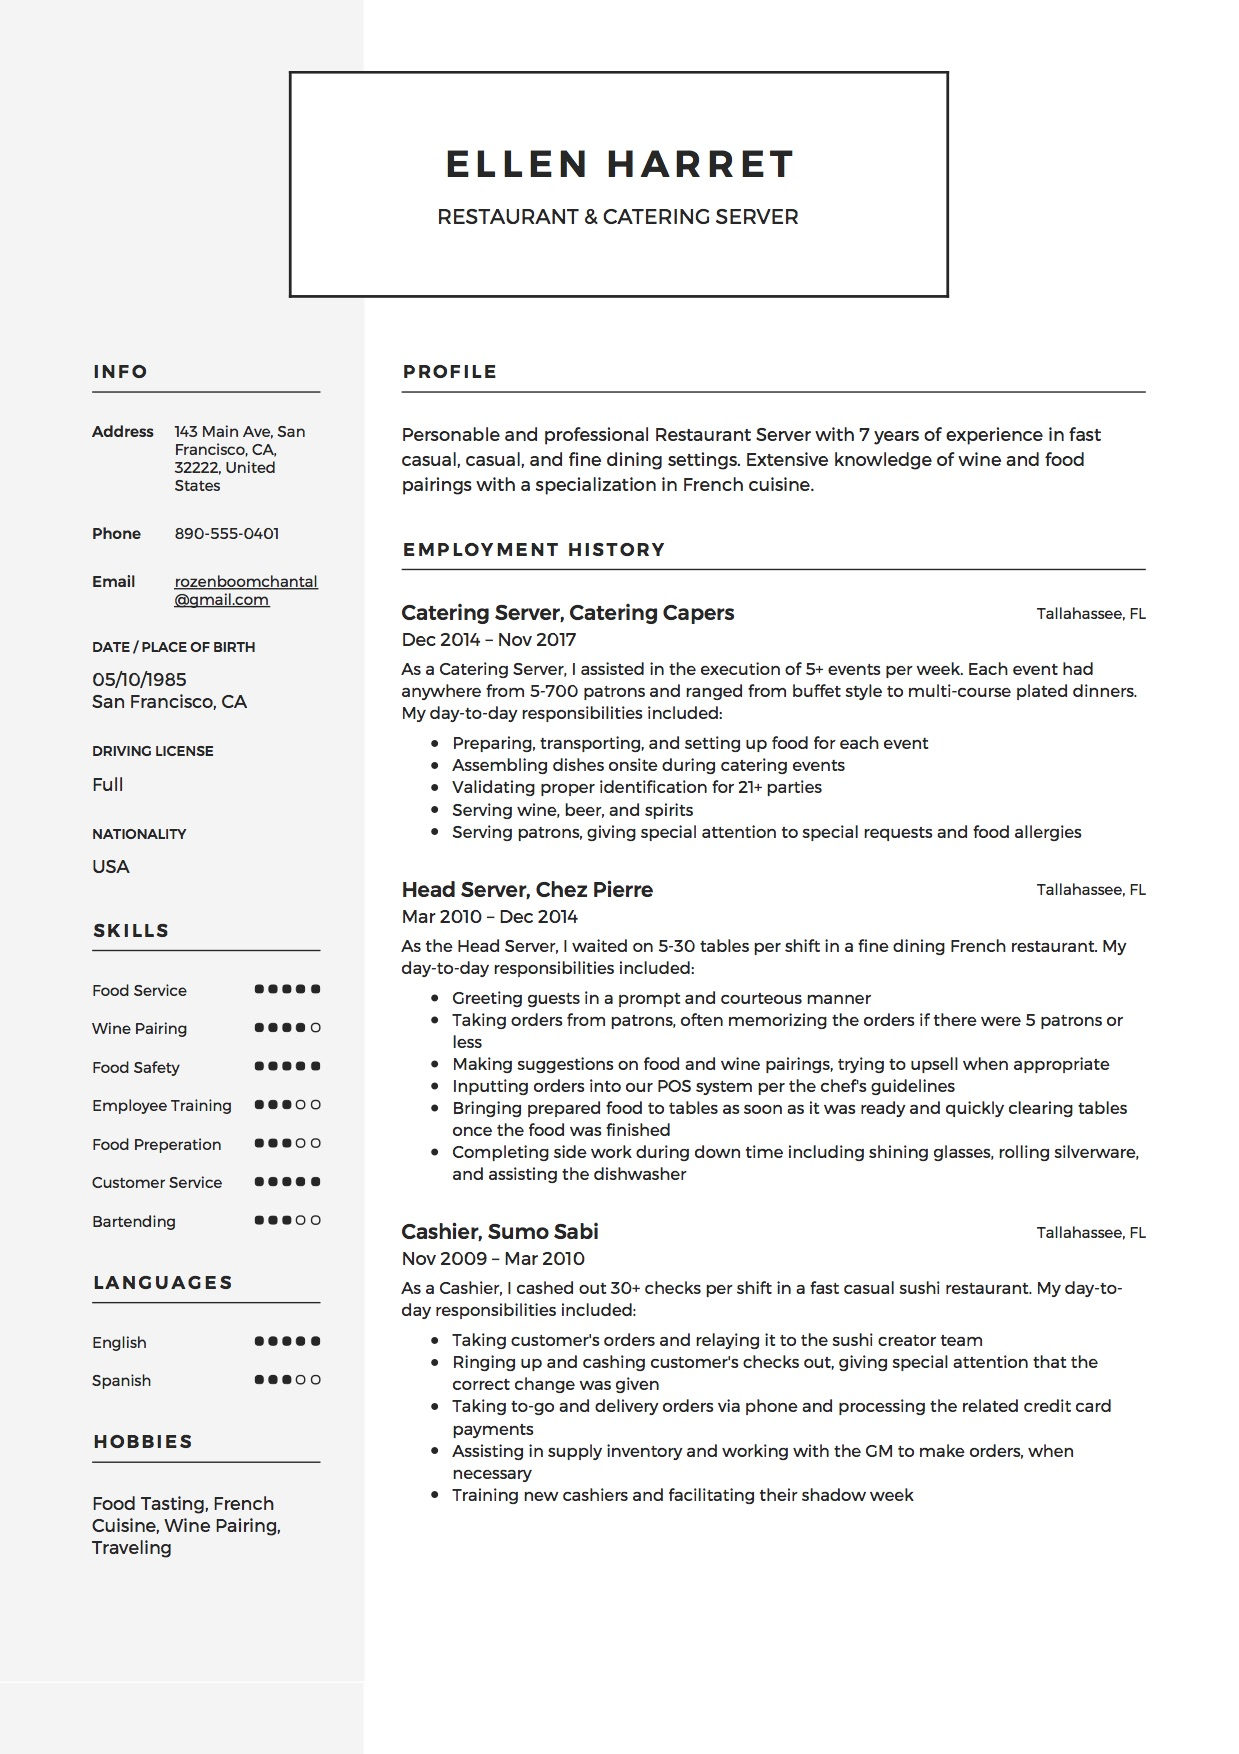 restaurant server resume sample - Resumes For Servers